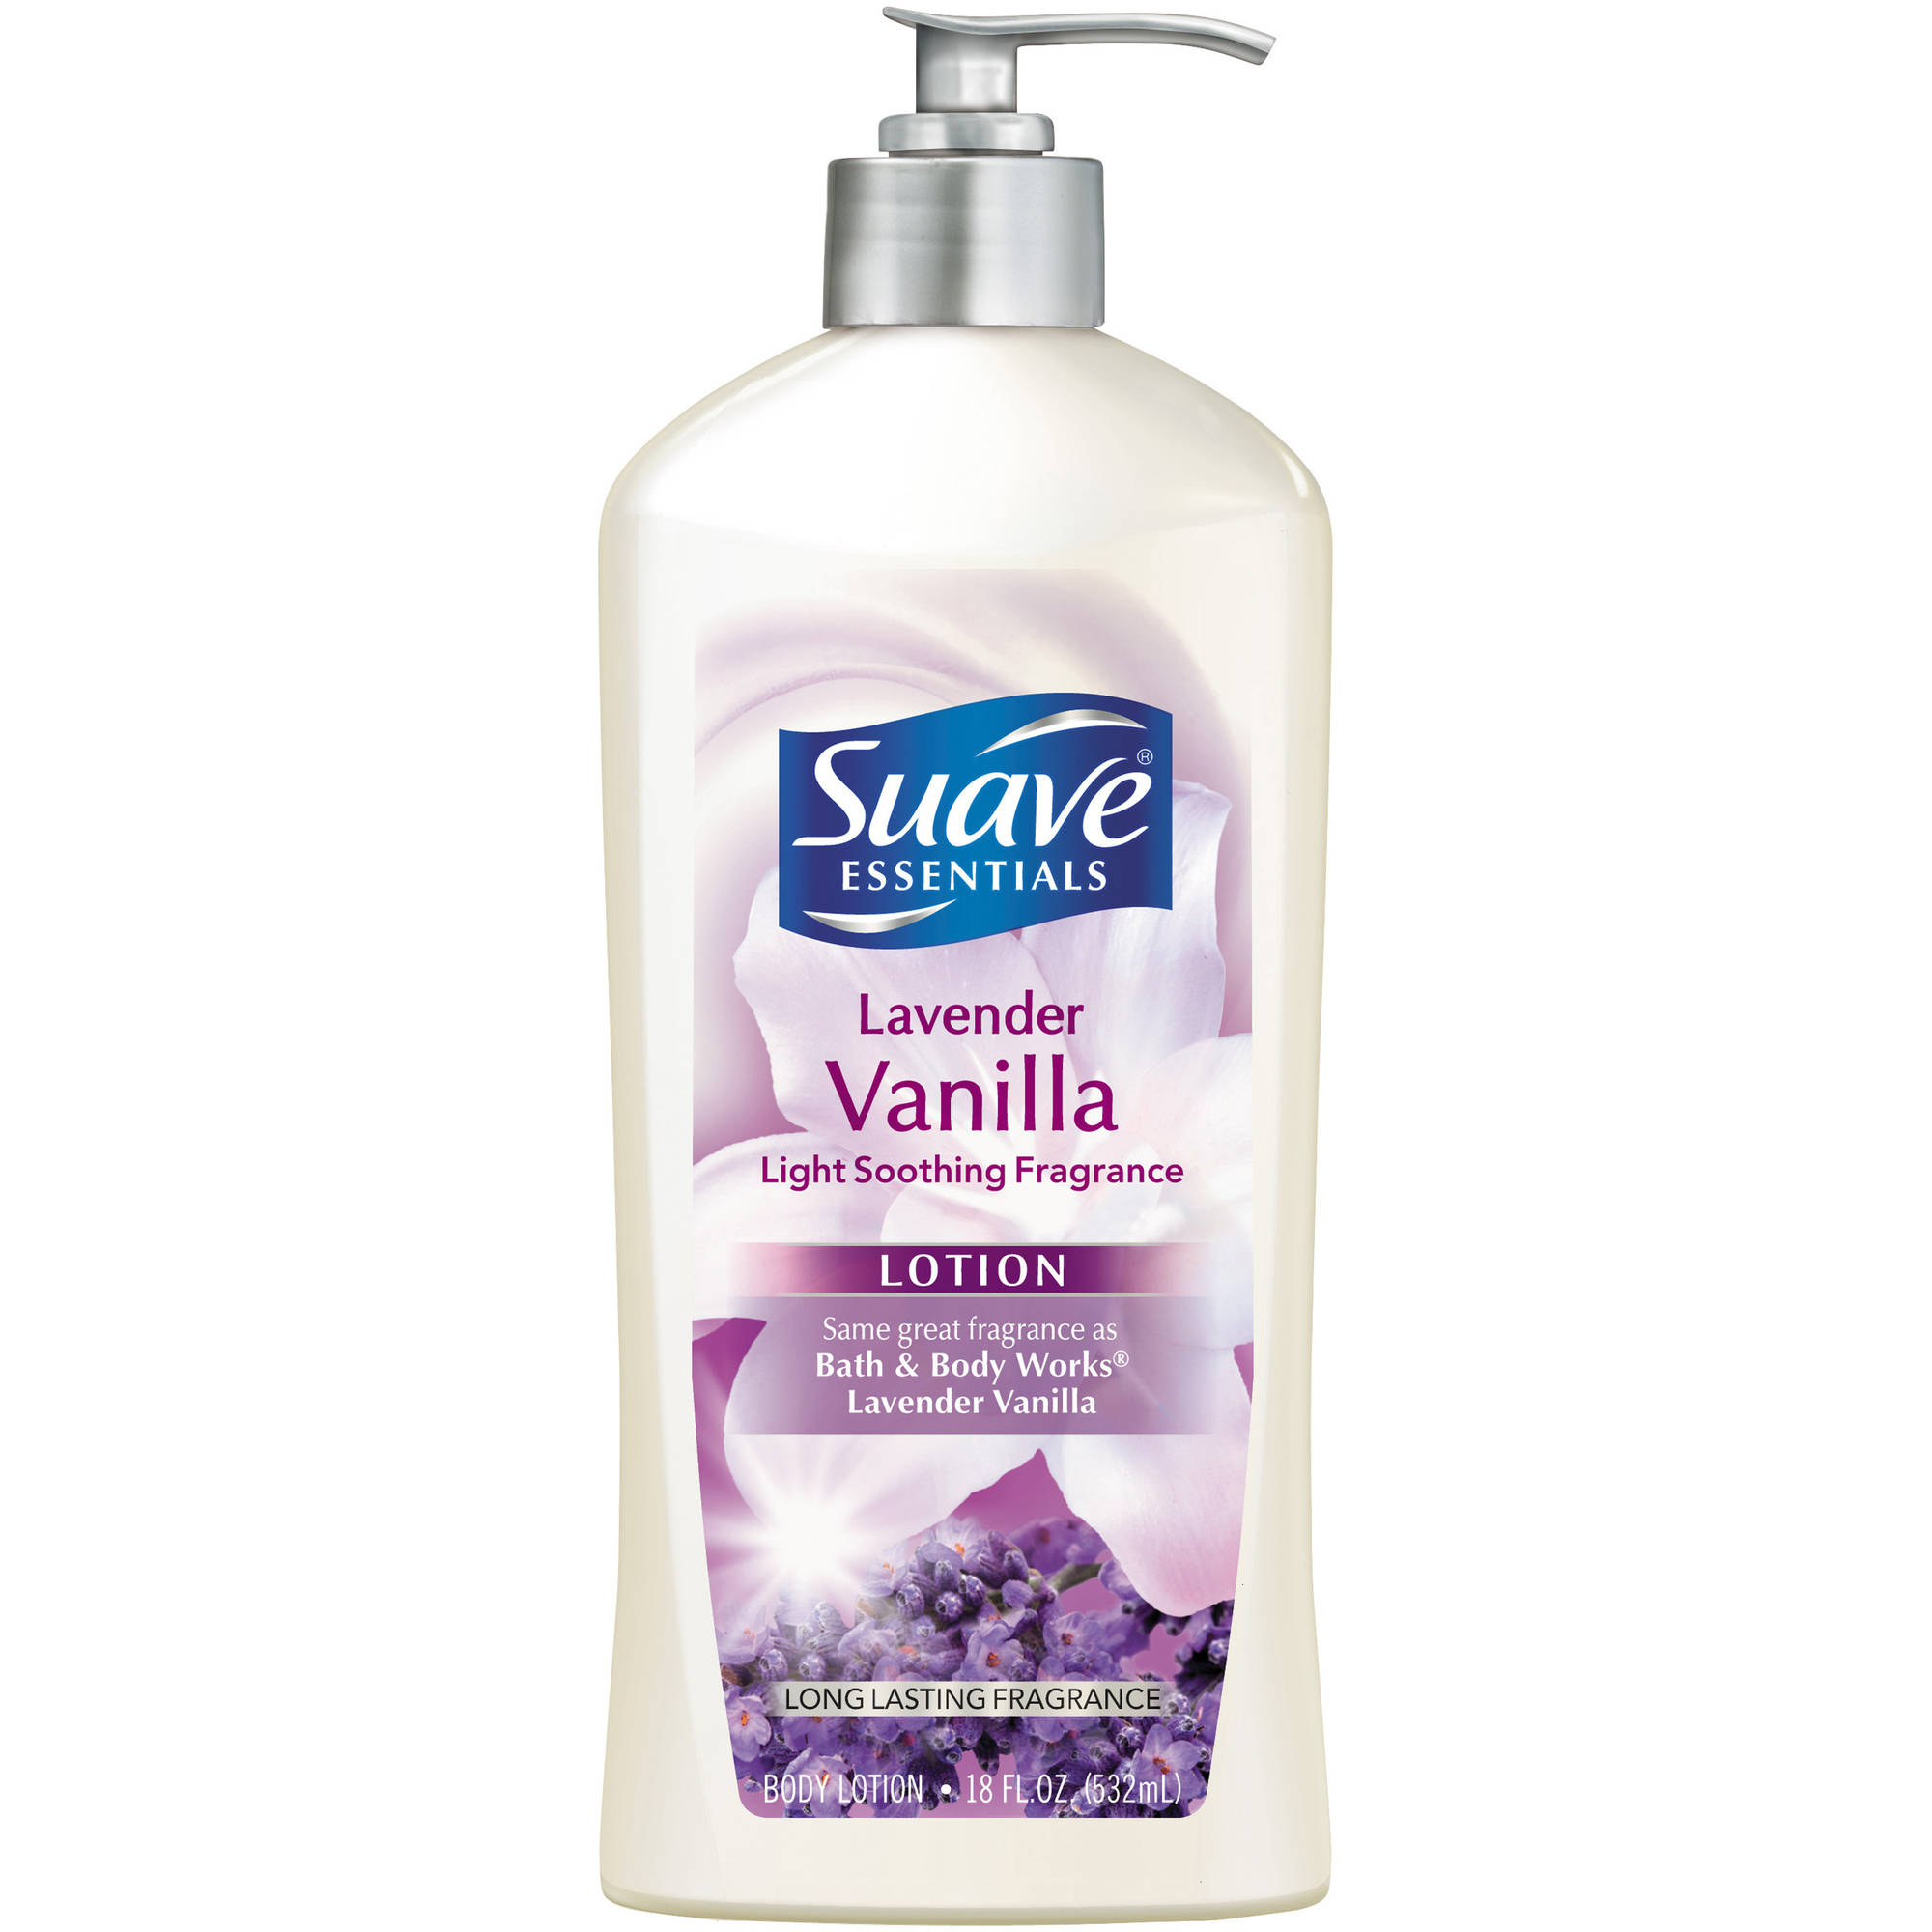 Suave Natural Moisterizing Body Lotion Image